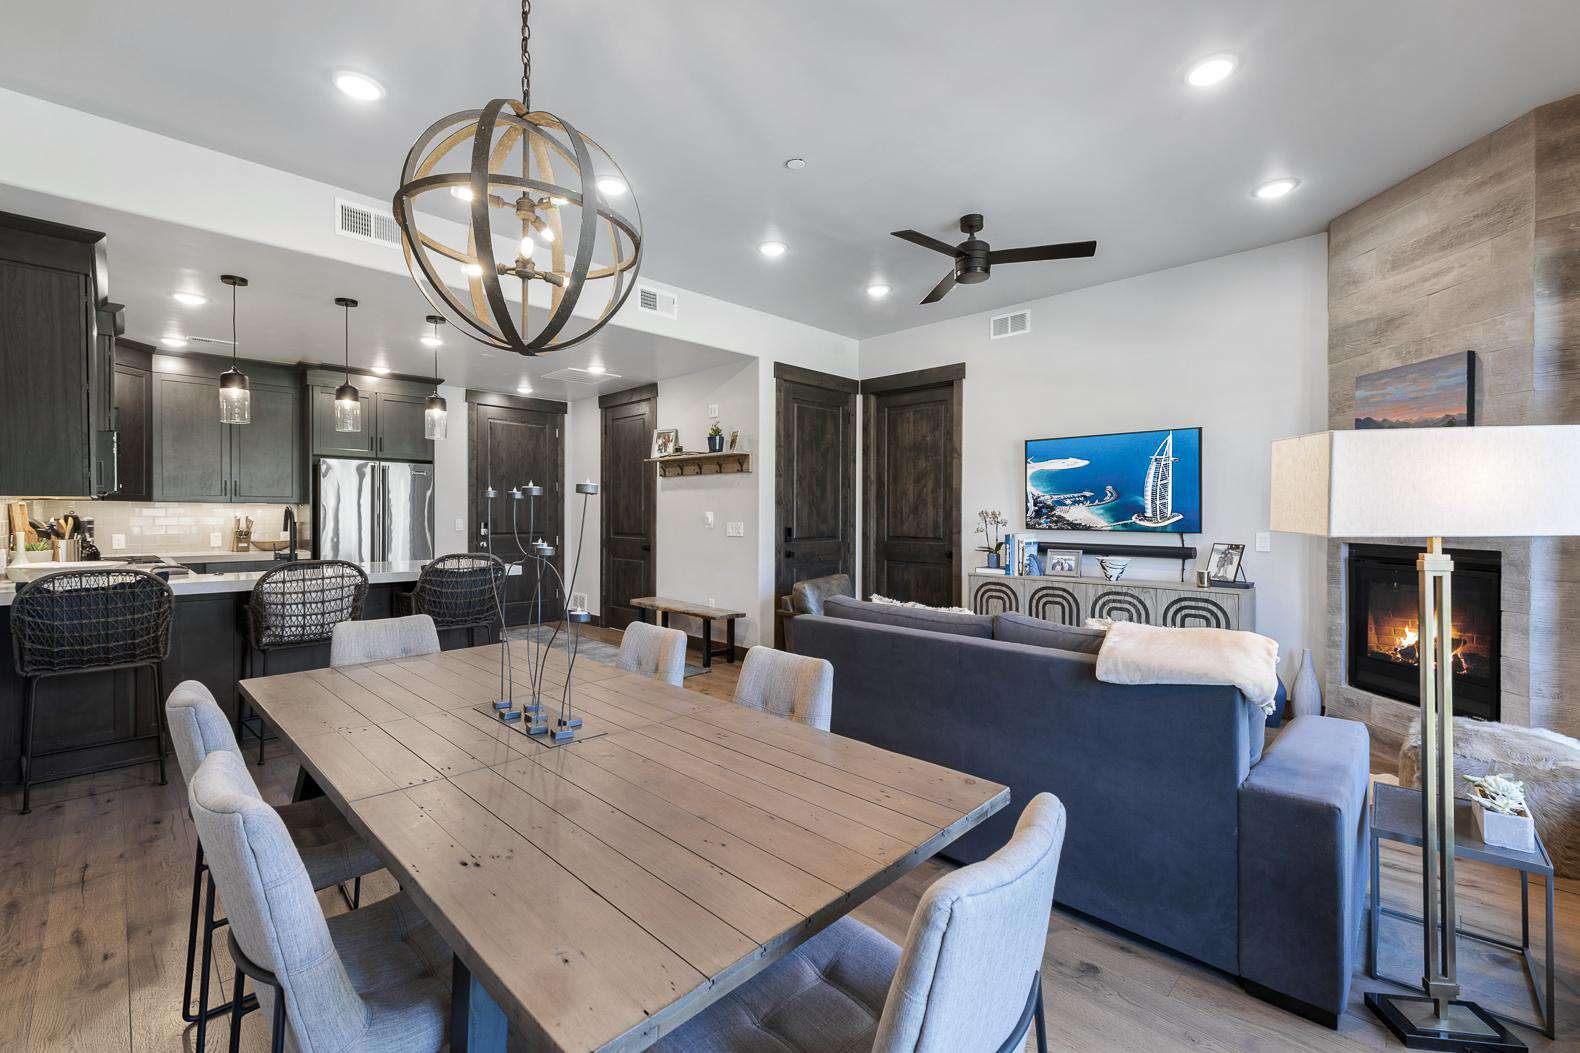 Living Room Dining Table & Kitchen